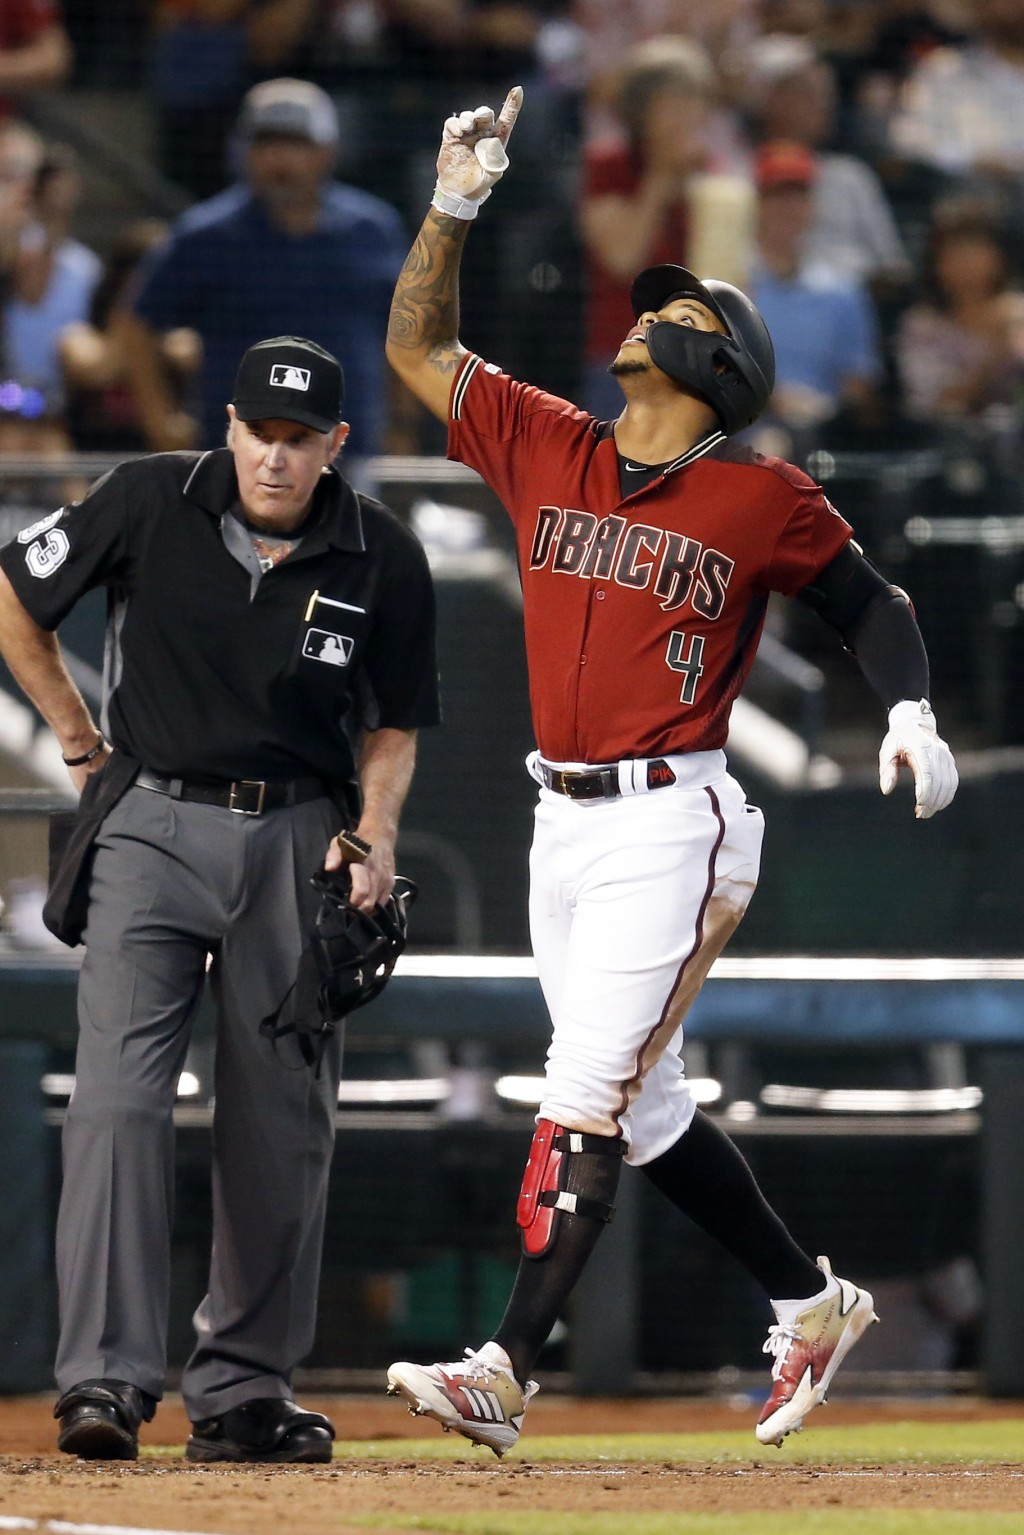 Arizona Diamondbacks' Ketel Marte (4) celebrates after hitting a two-run home run against the San Diego Padres in the third inning during a baseball g